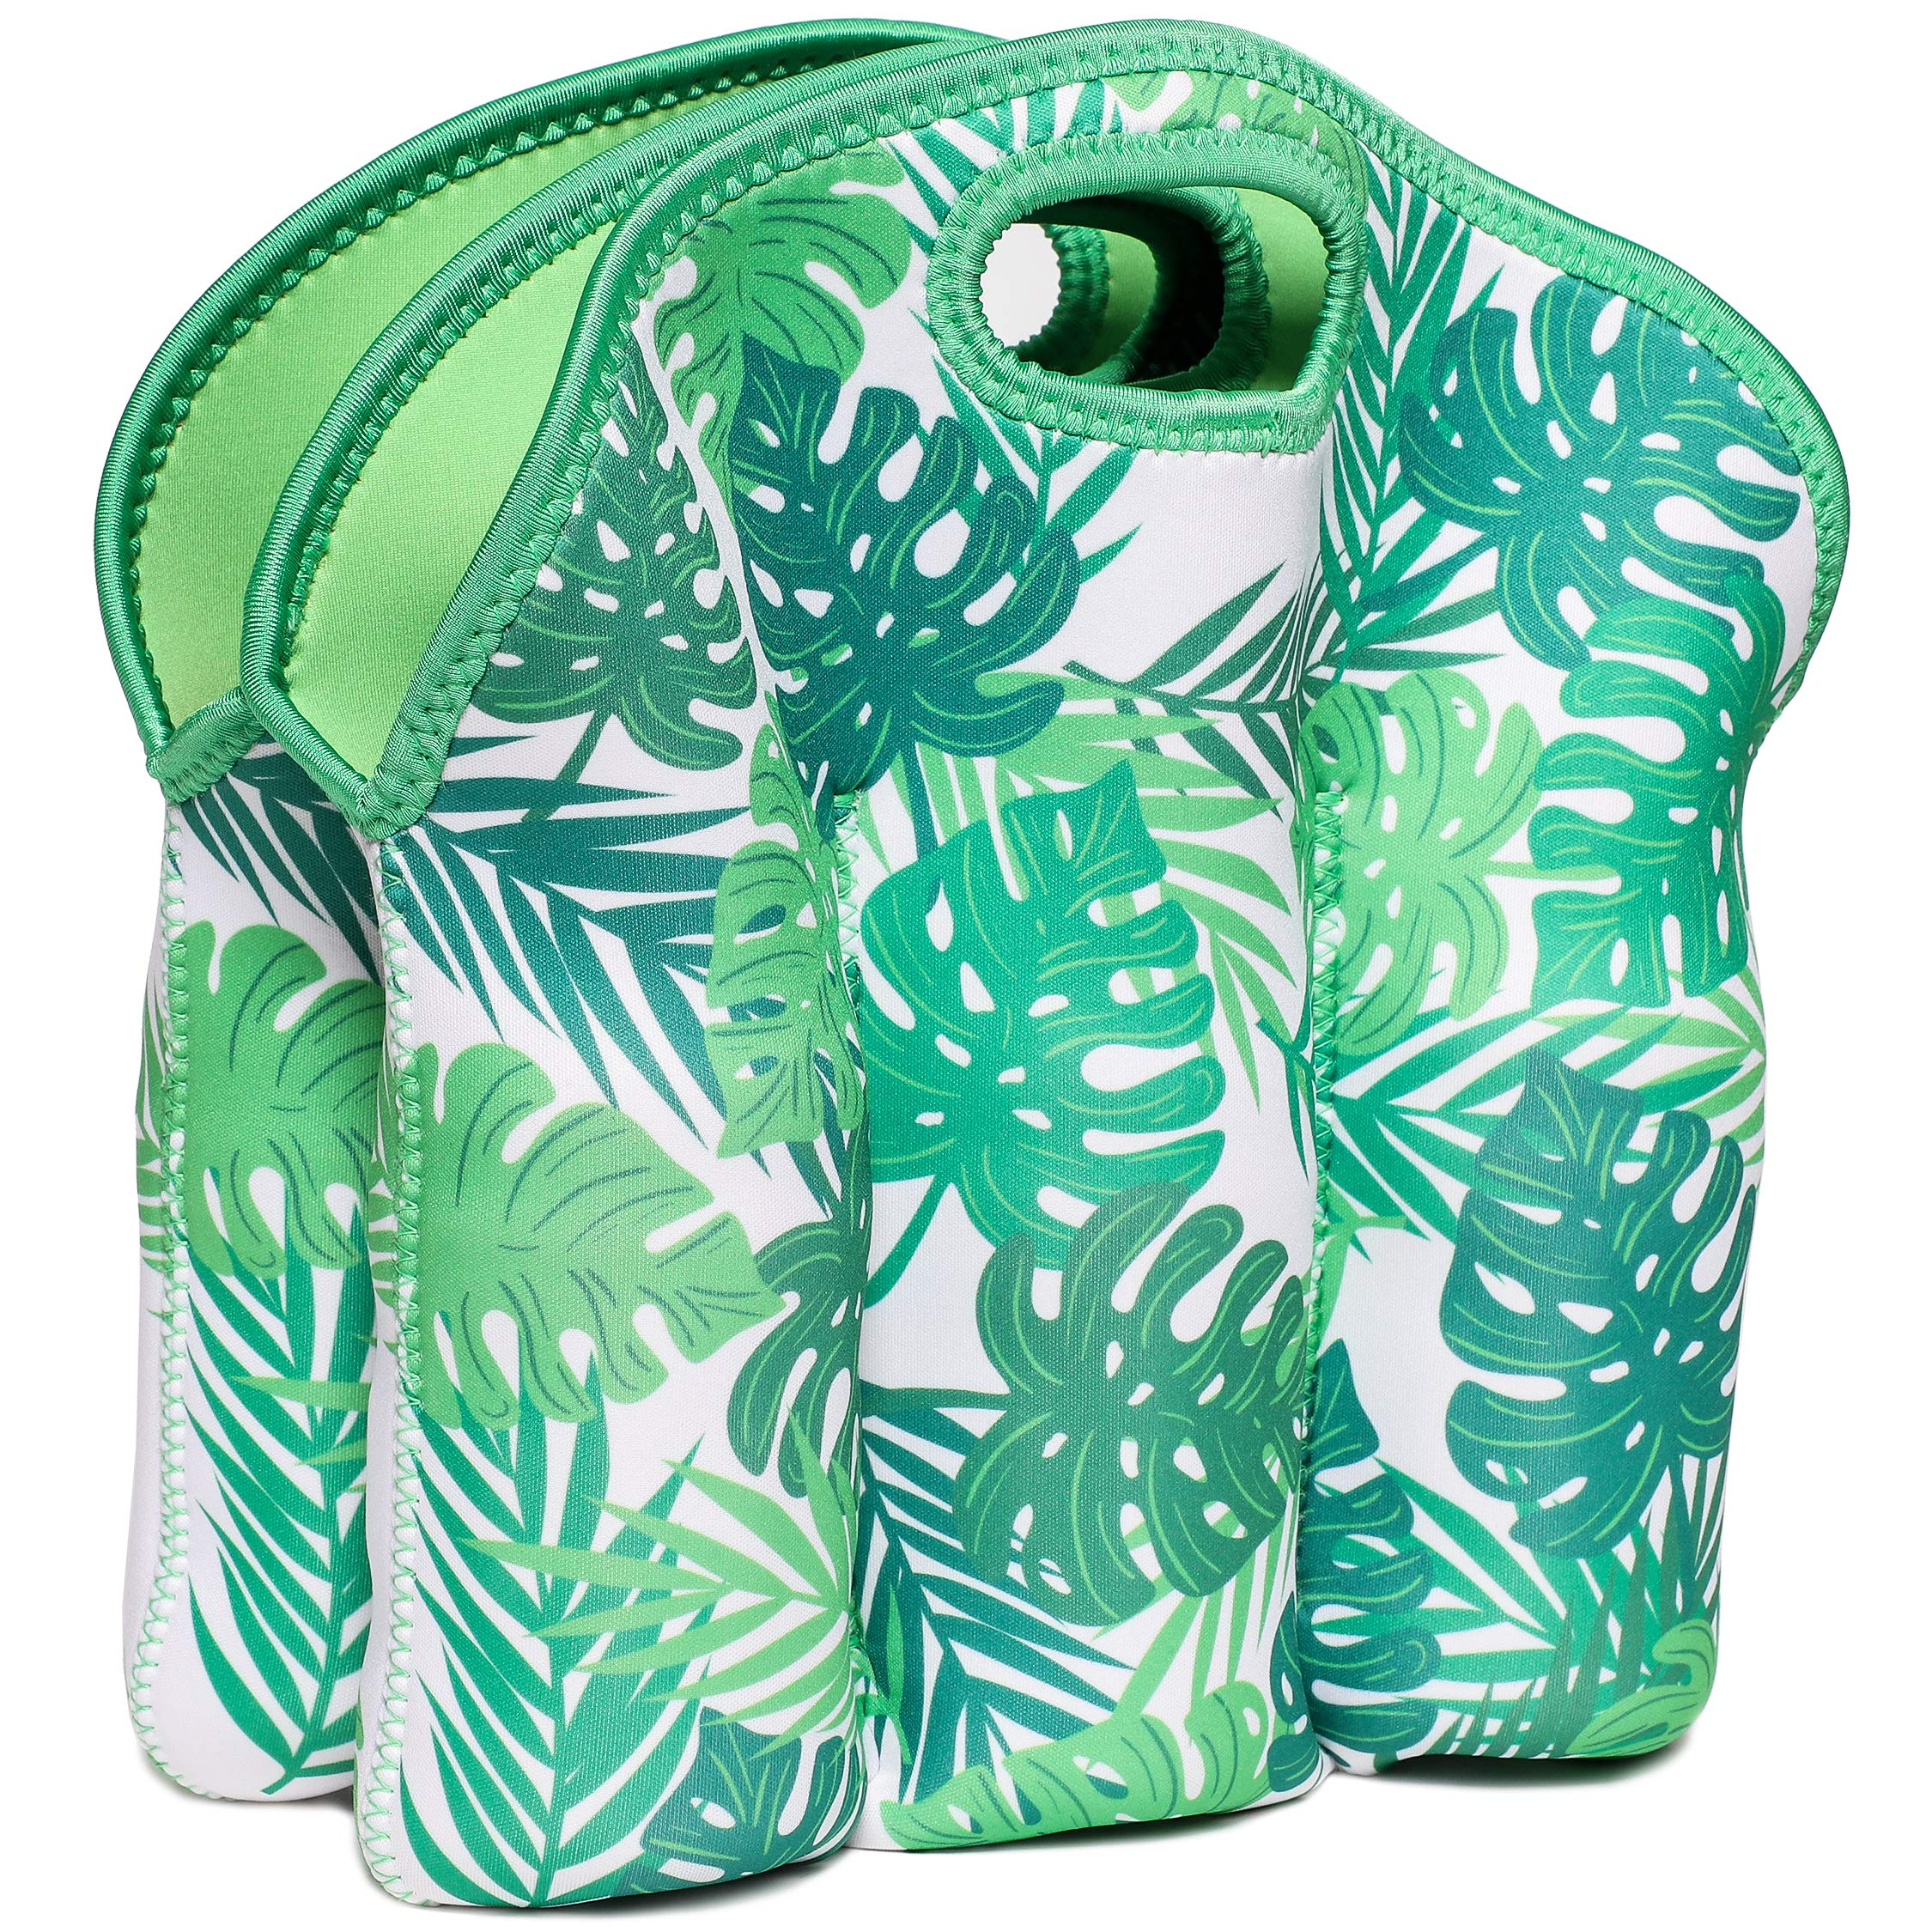 Juvale Neoprene Insulated 6-Pack Baby Bottle Cooler Carrier Tote Bag, 12.5 x 11 Inches by Juvale